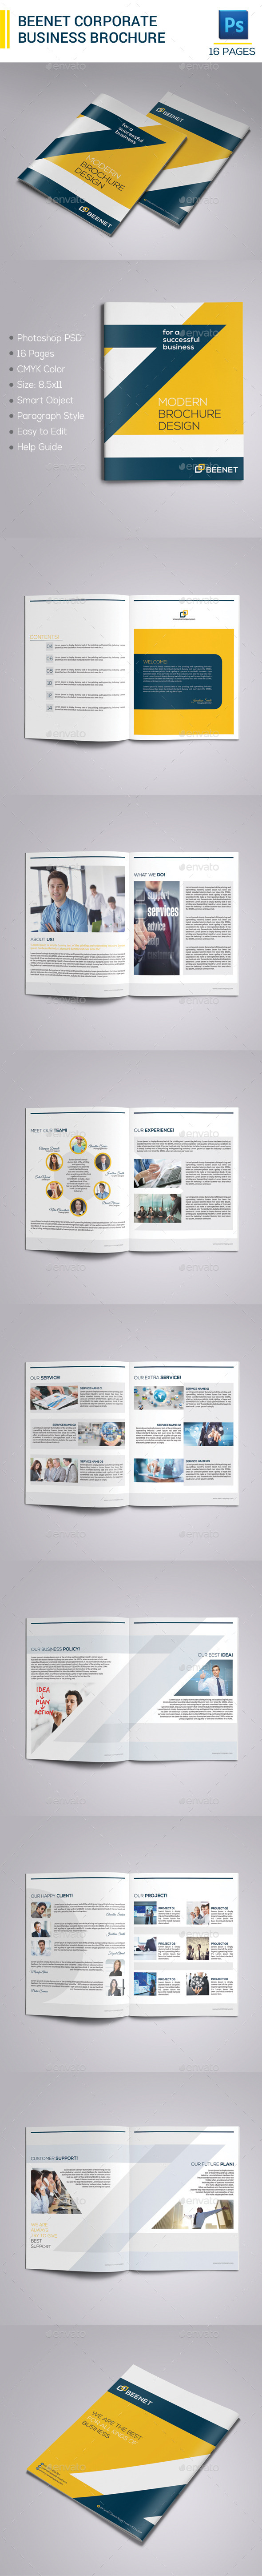 Beenet Corporate Business Brochure - Corporate Brochures